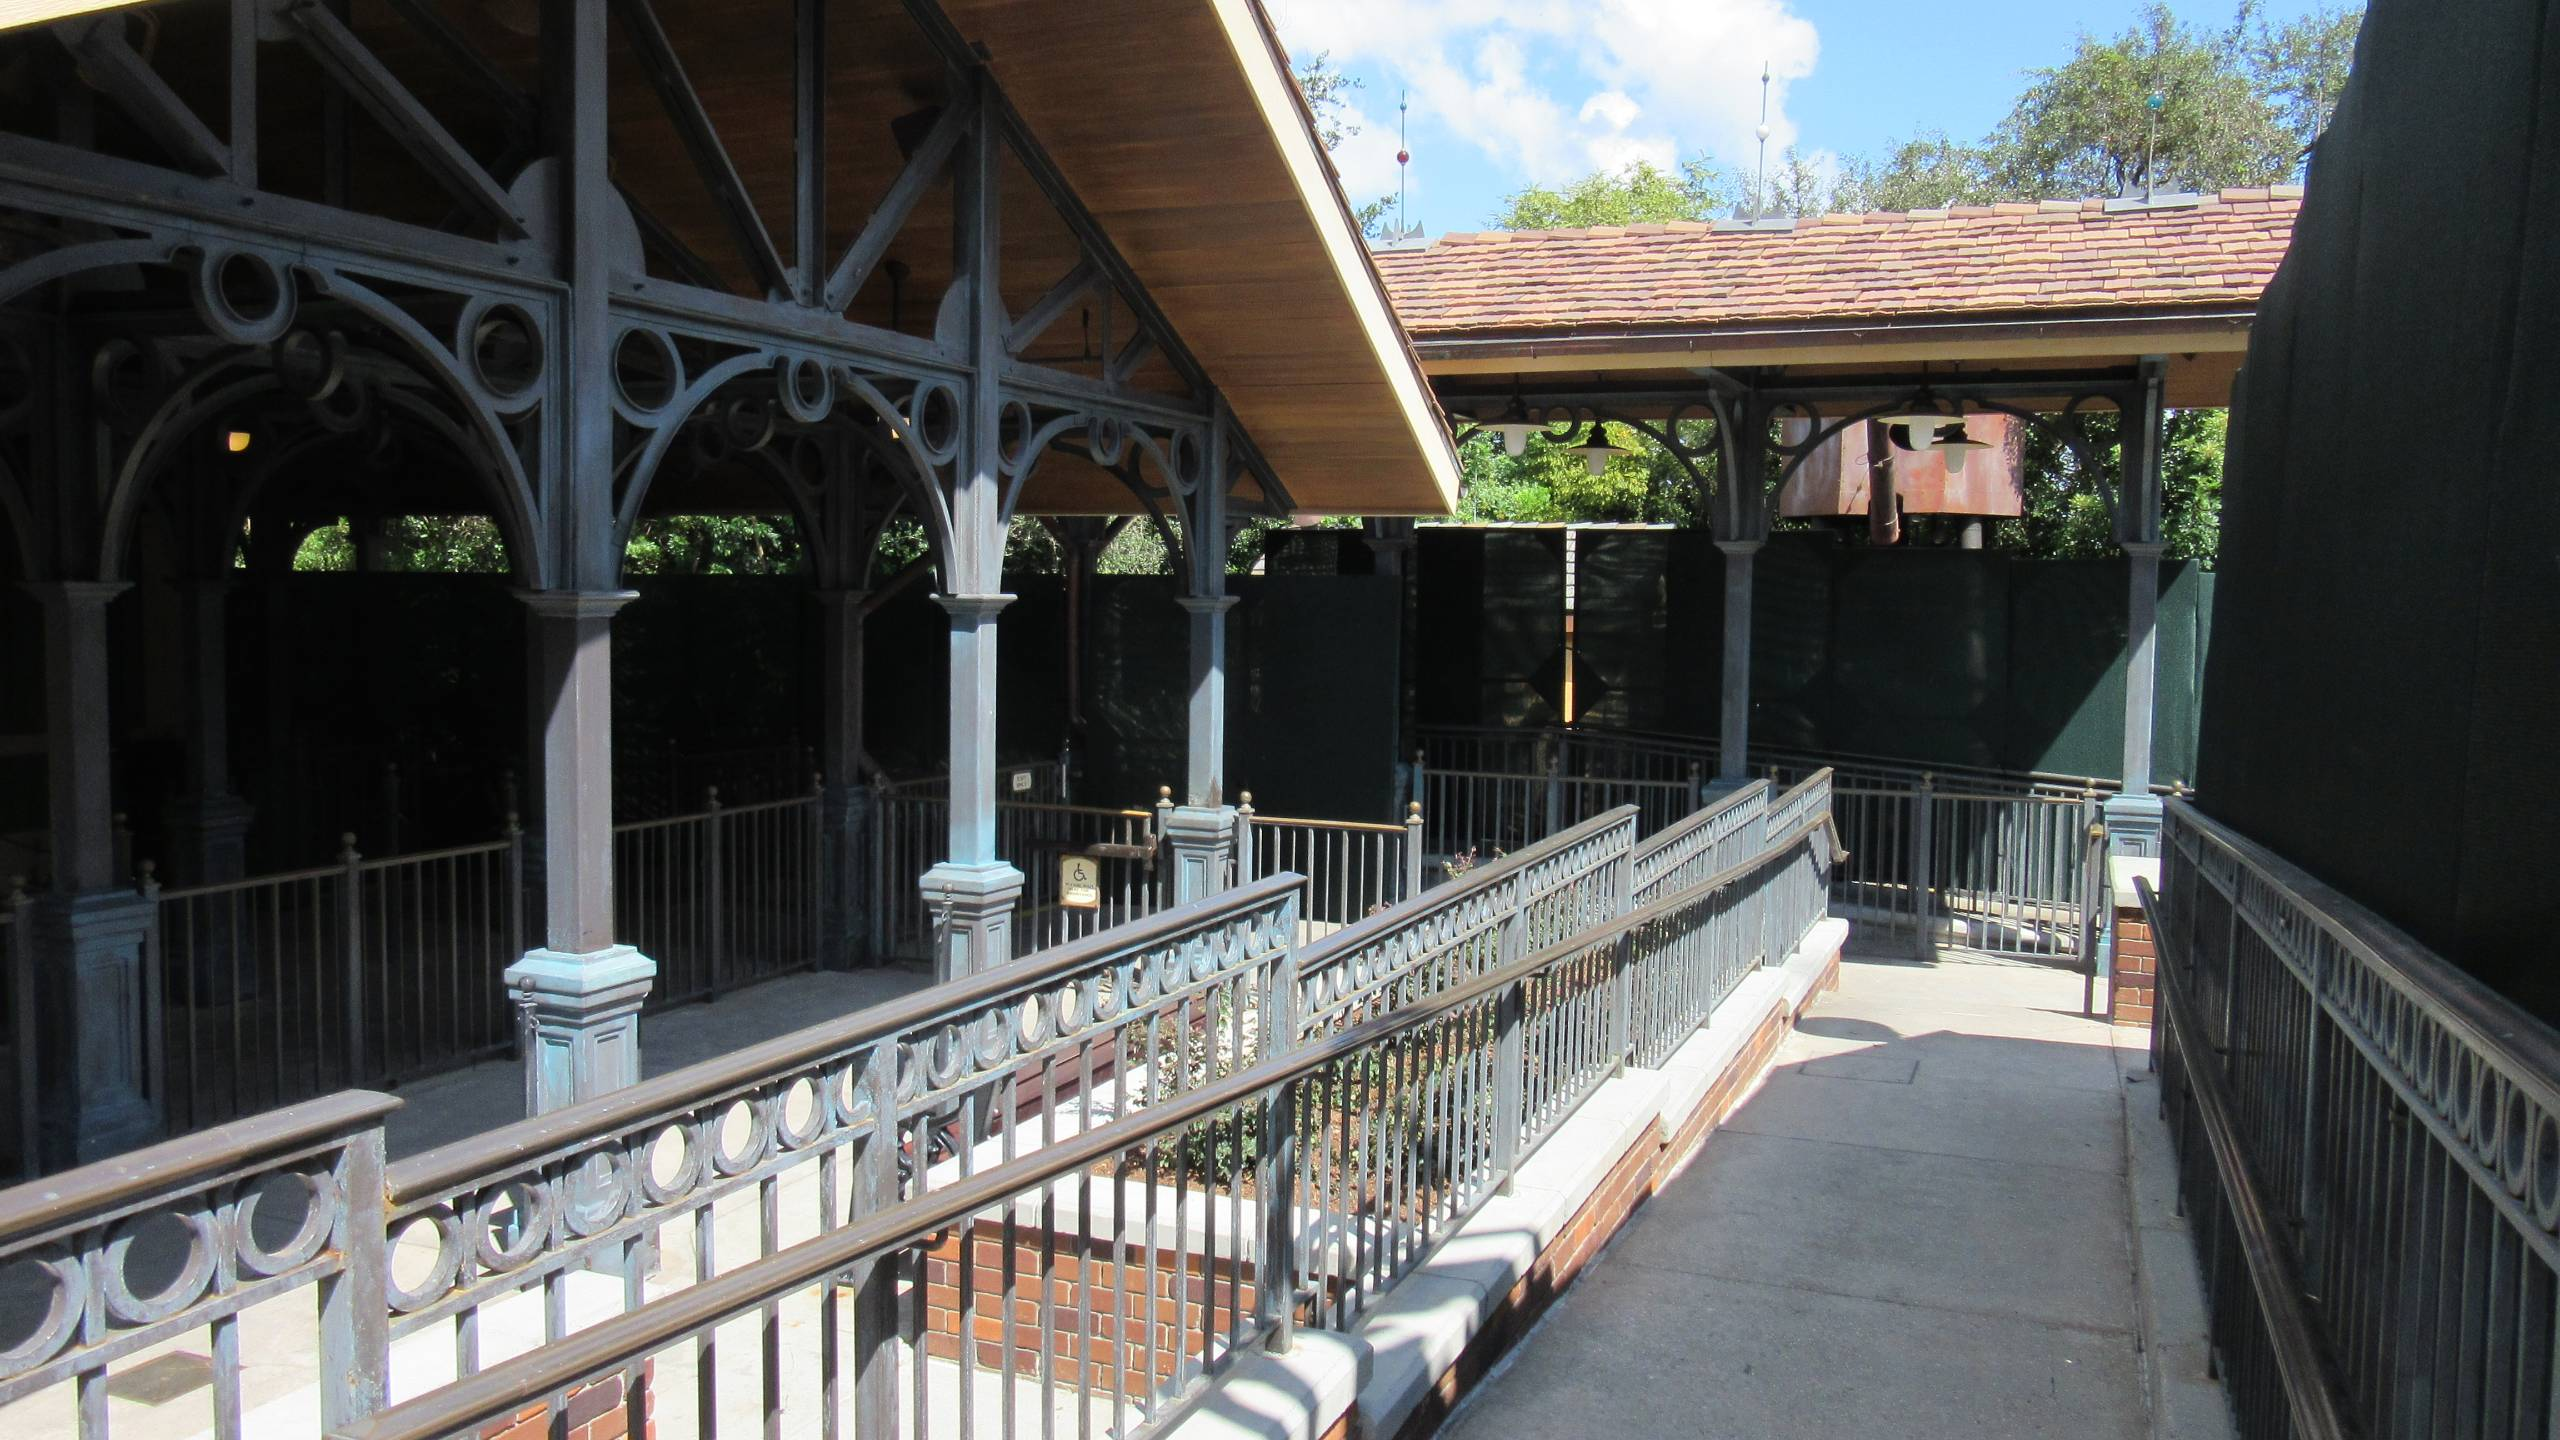 Railroad refurbishment